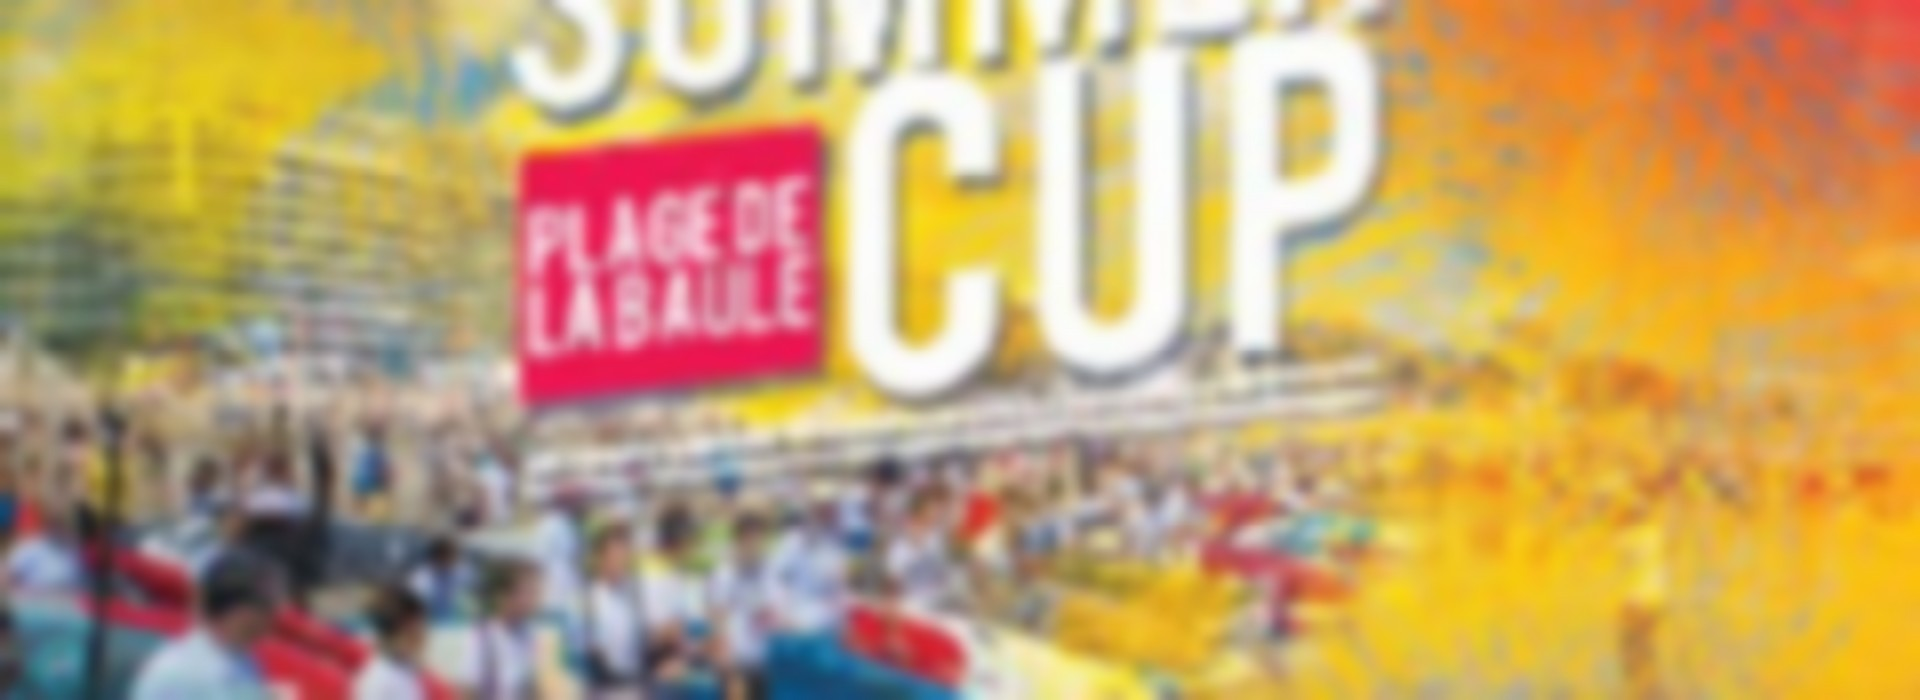 SUMMER CUP 2018